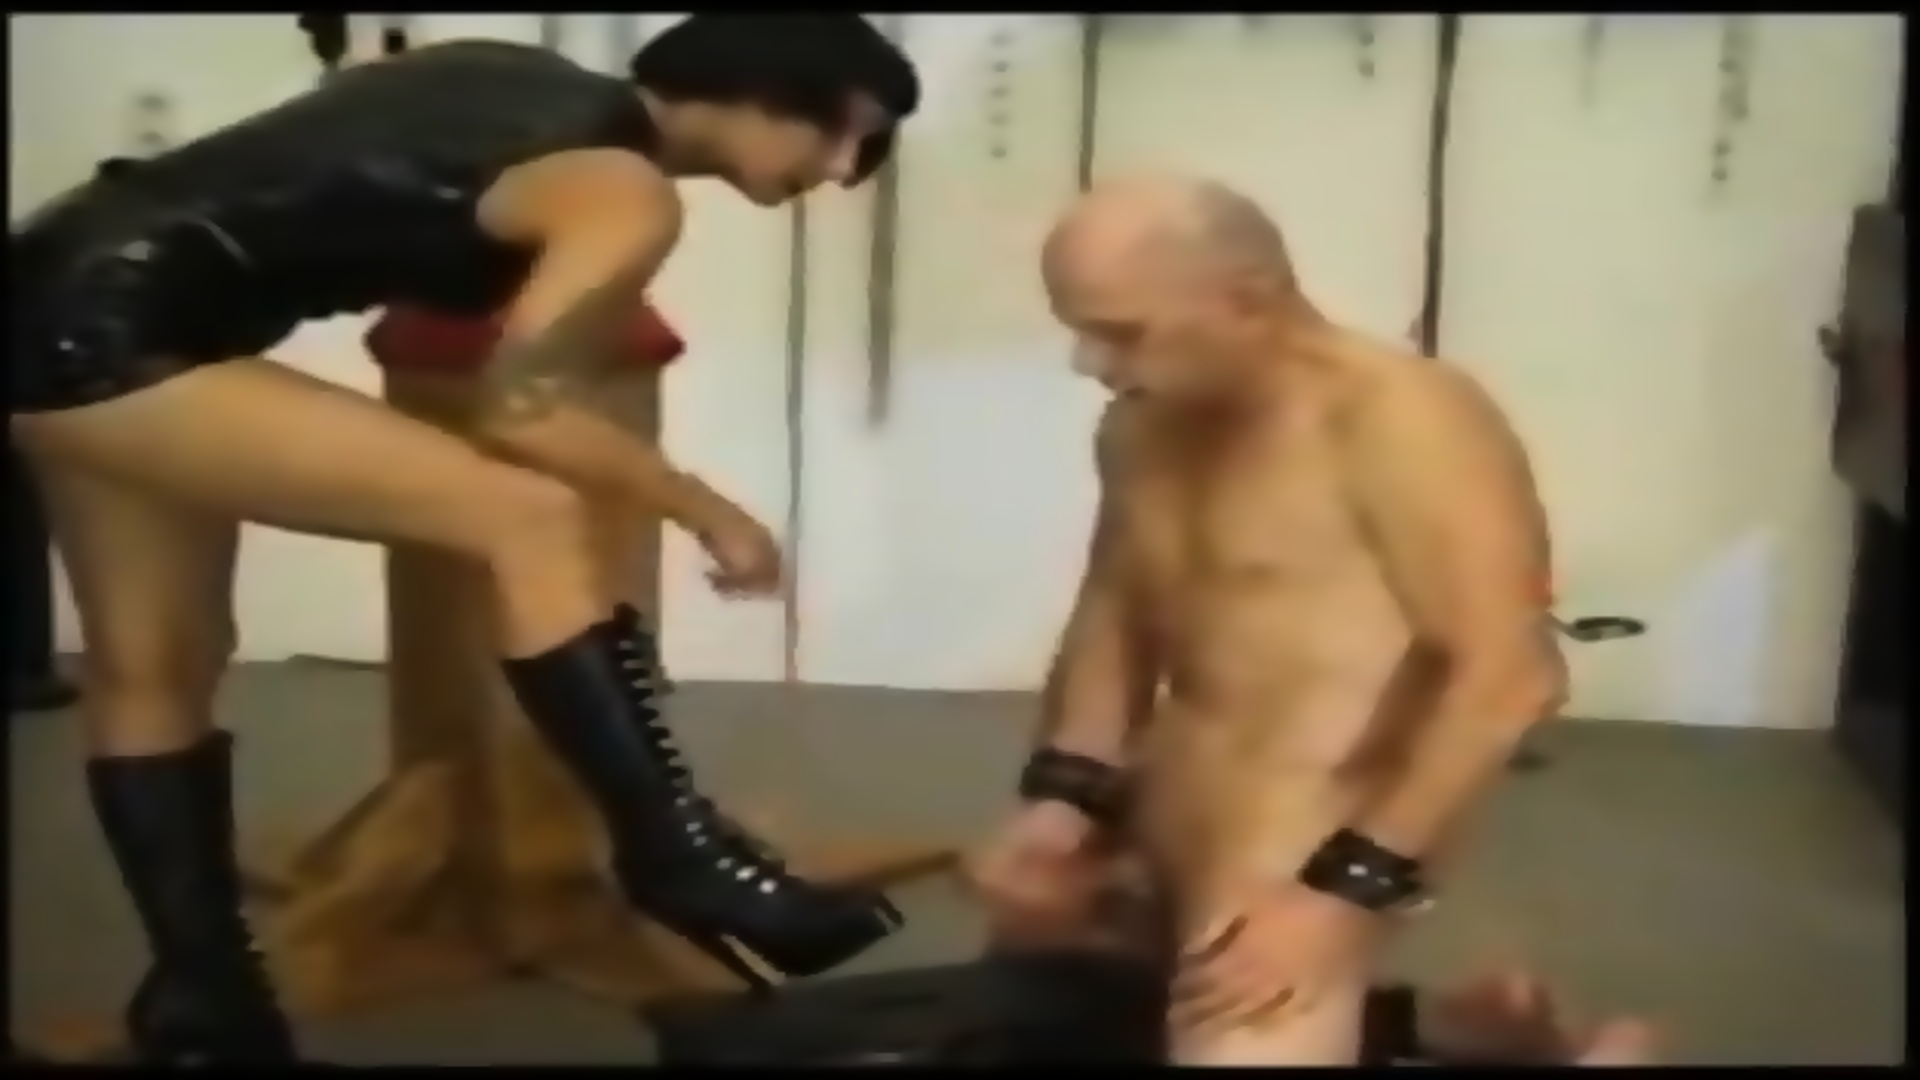 opinion gay mmf bisexual wife anal mmf gay right! like this idea